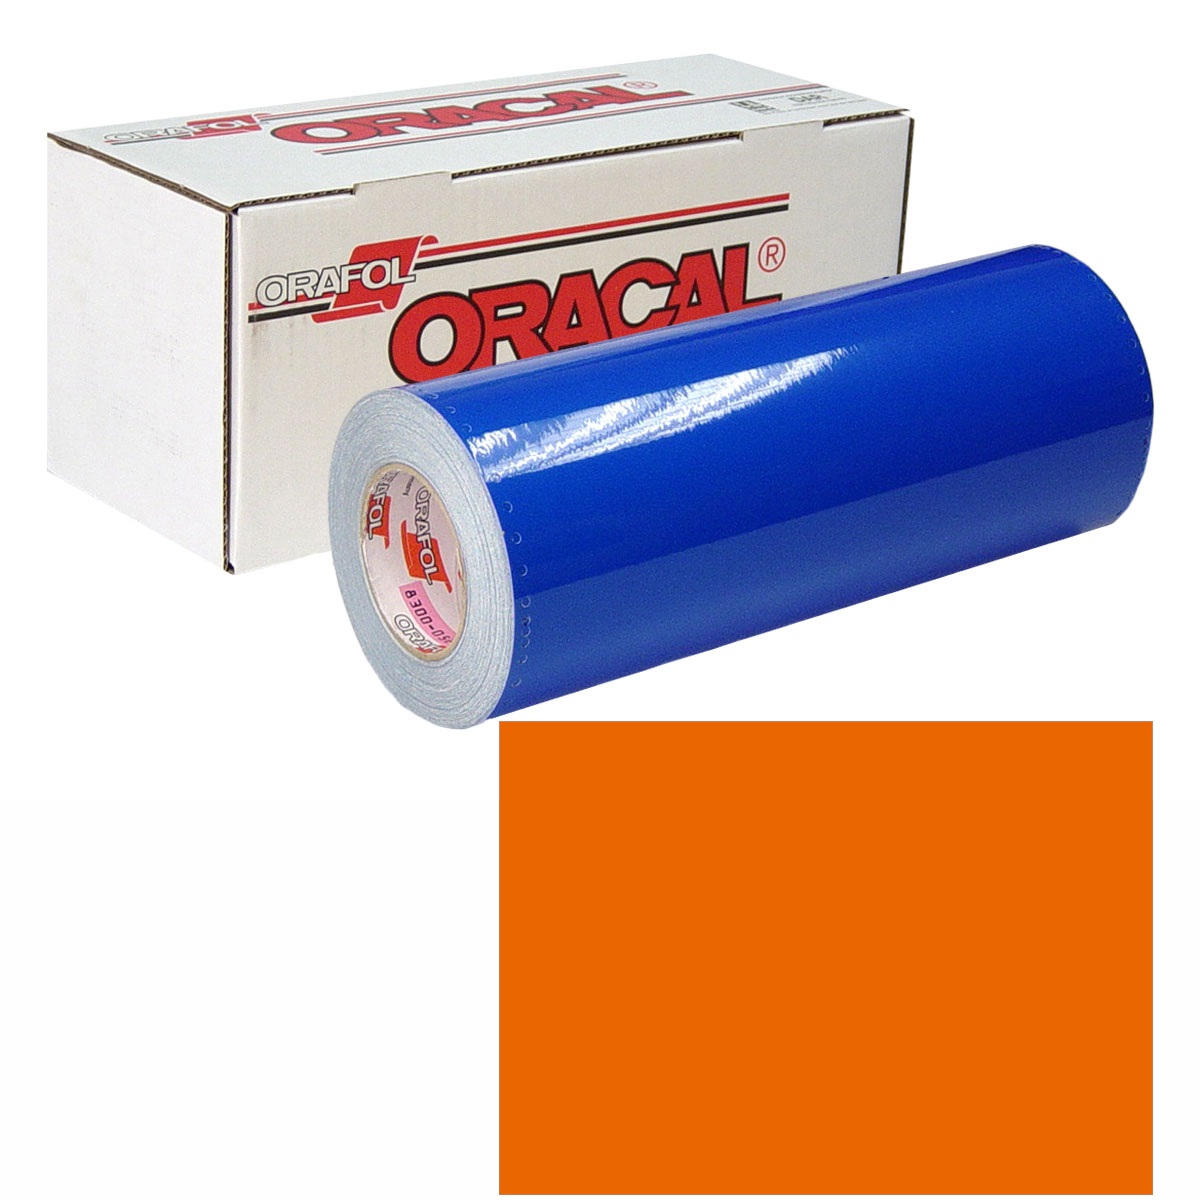 ORACAL 631 15in X 50yd 036 Light Orange